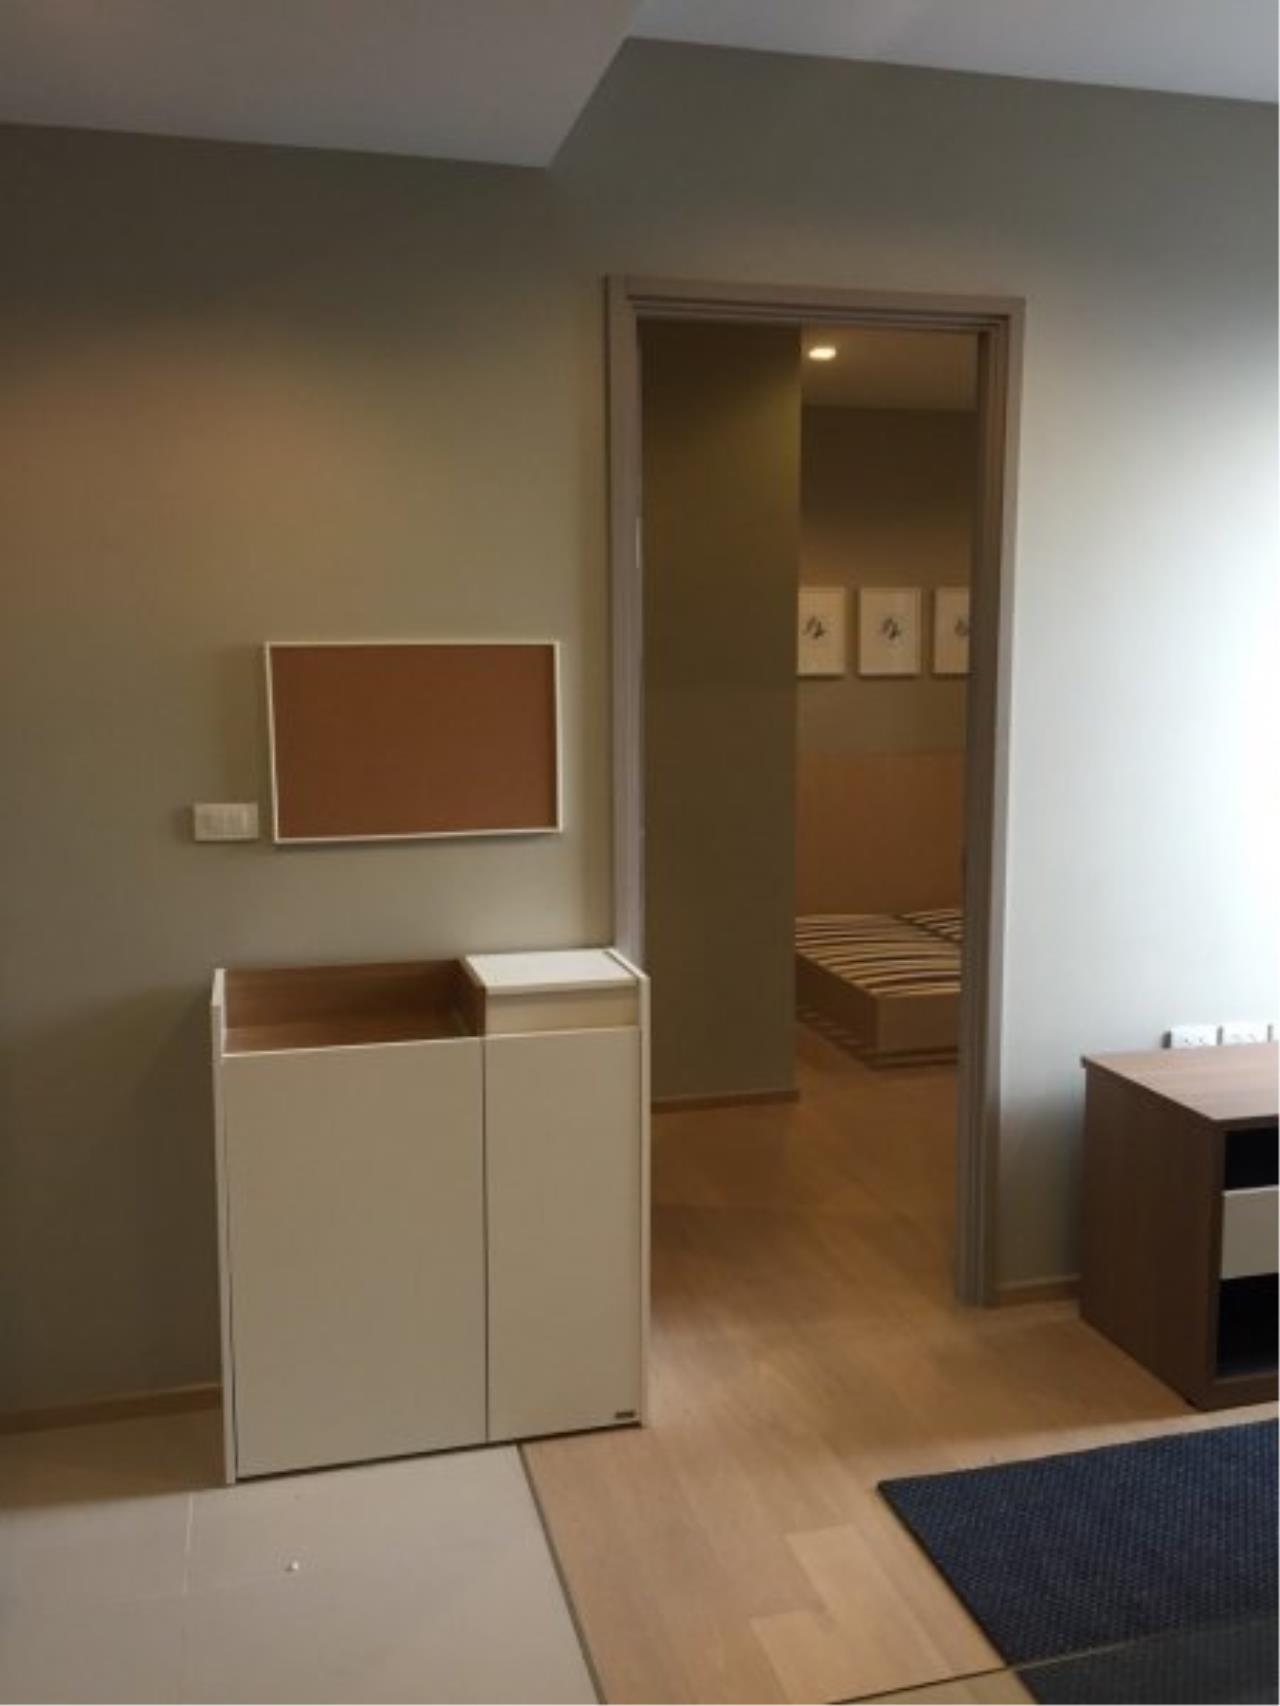 Piri Property Agency's Compact 1 Bedroom in the HQ Condo for rent on high floor 3